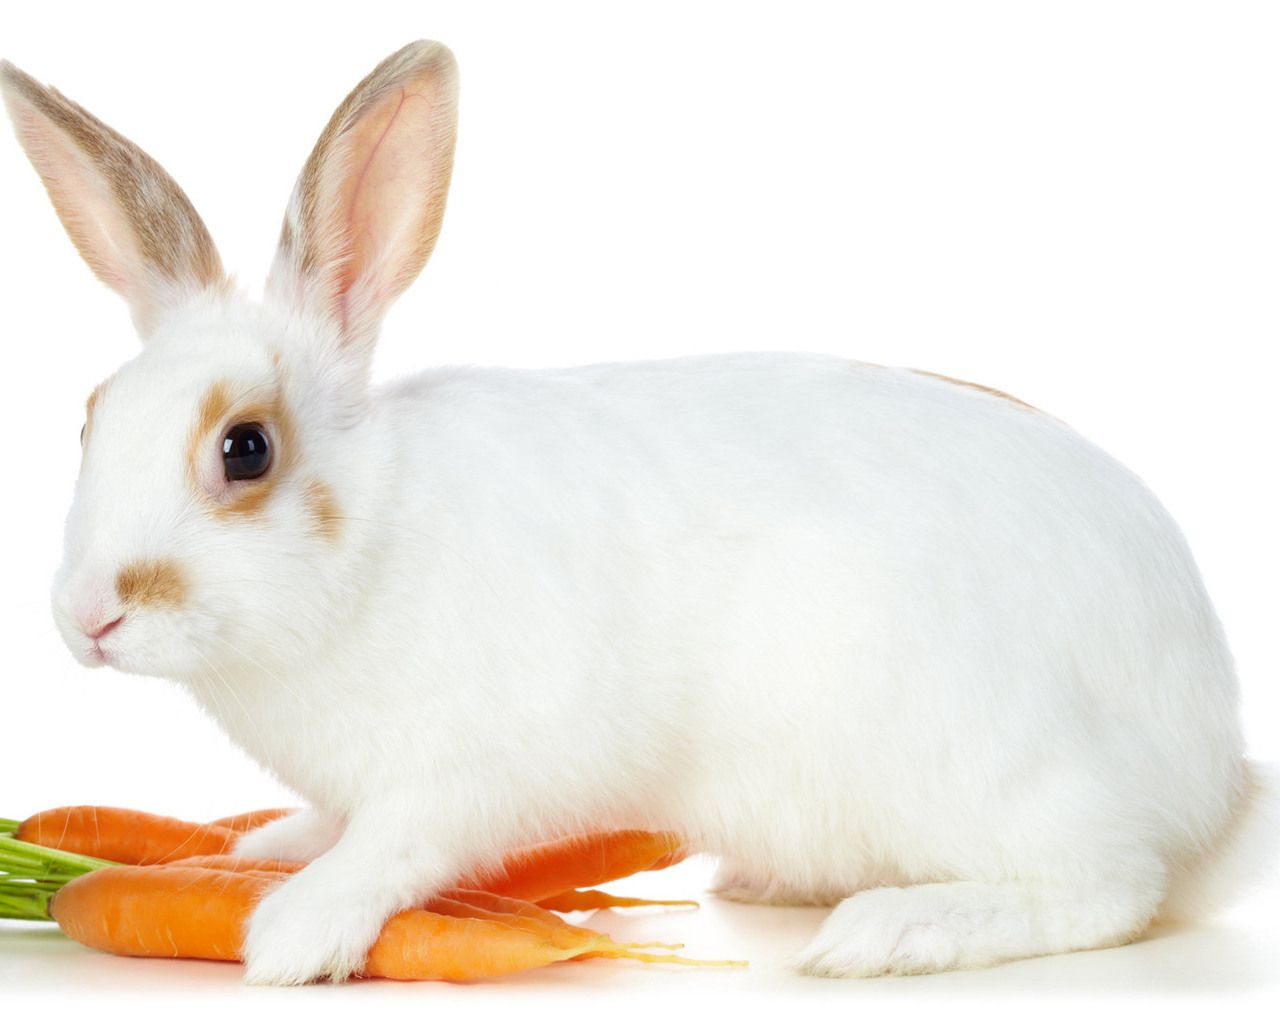 Cute Rabbit Wallpapers Clean White